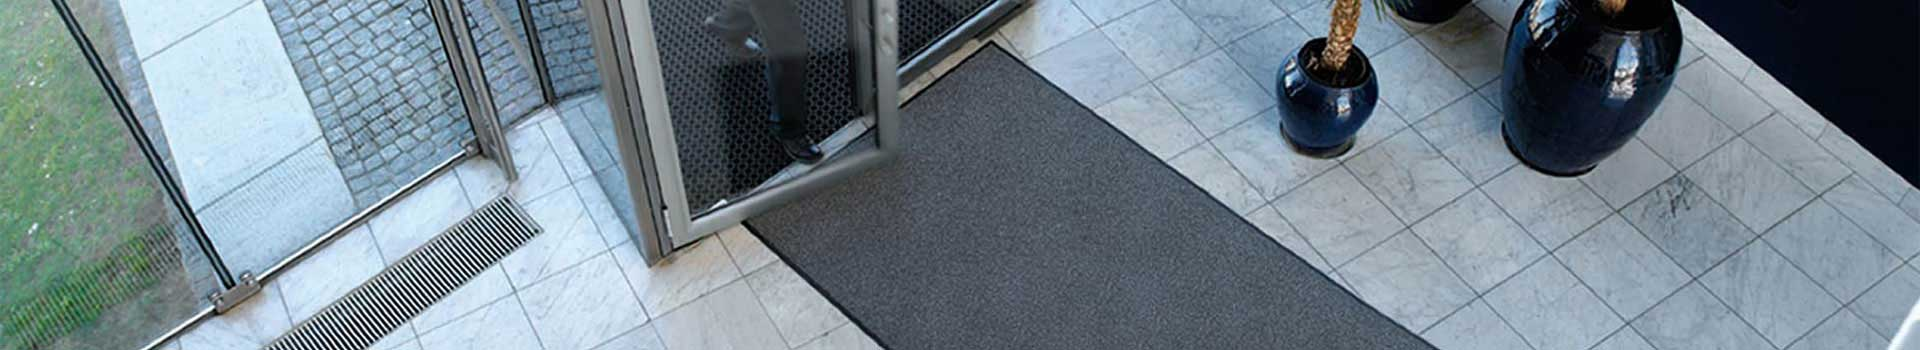 Commercial Serviced Entrance Mats